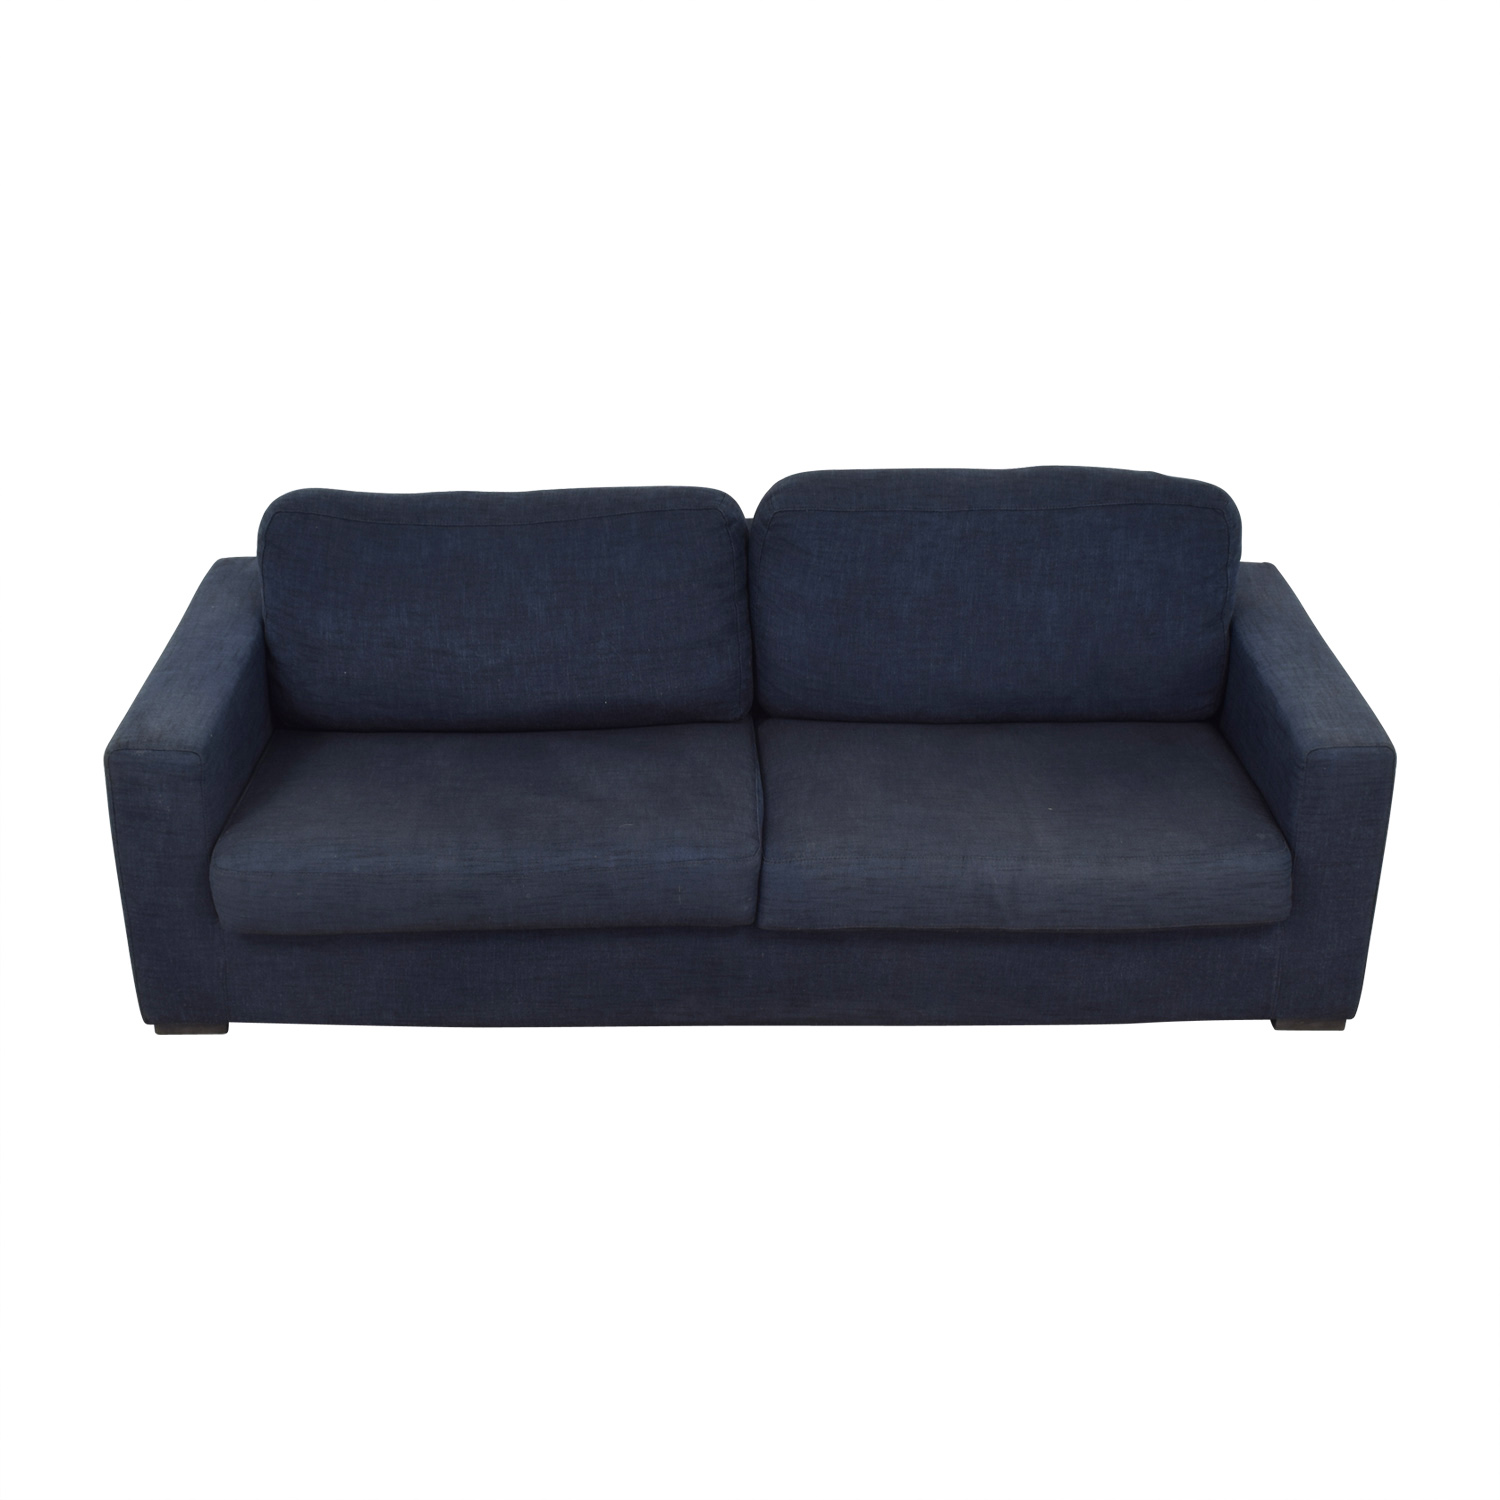 buy Meridiani Italian Navy Linen Two-Cushion Couch Meridiani Classic Sofas